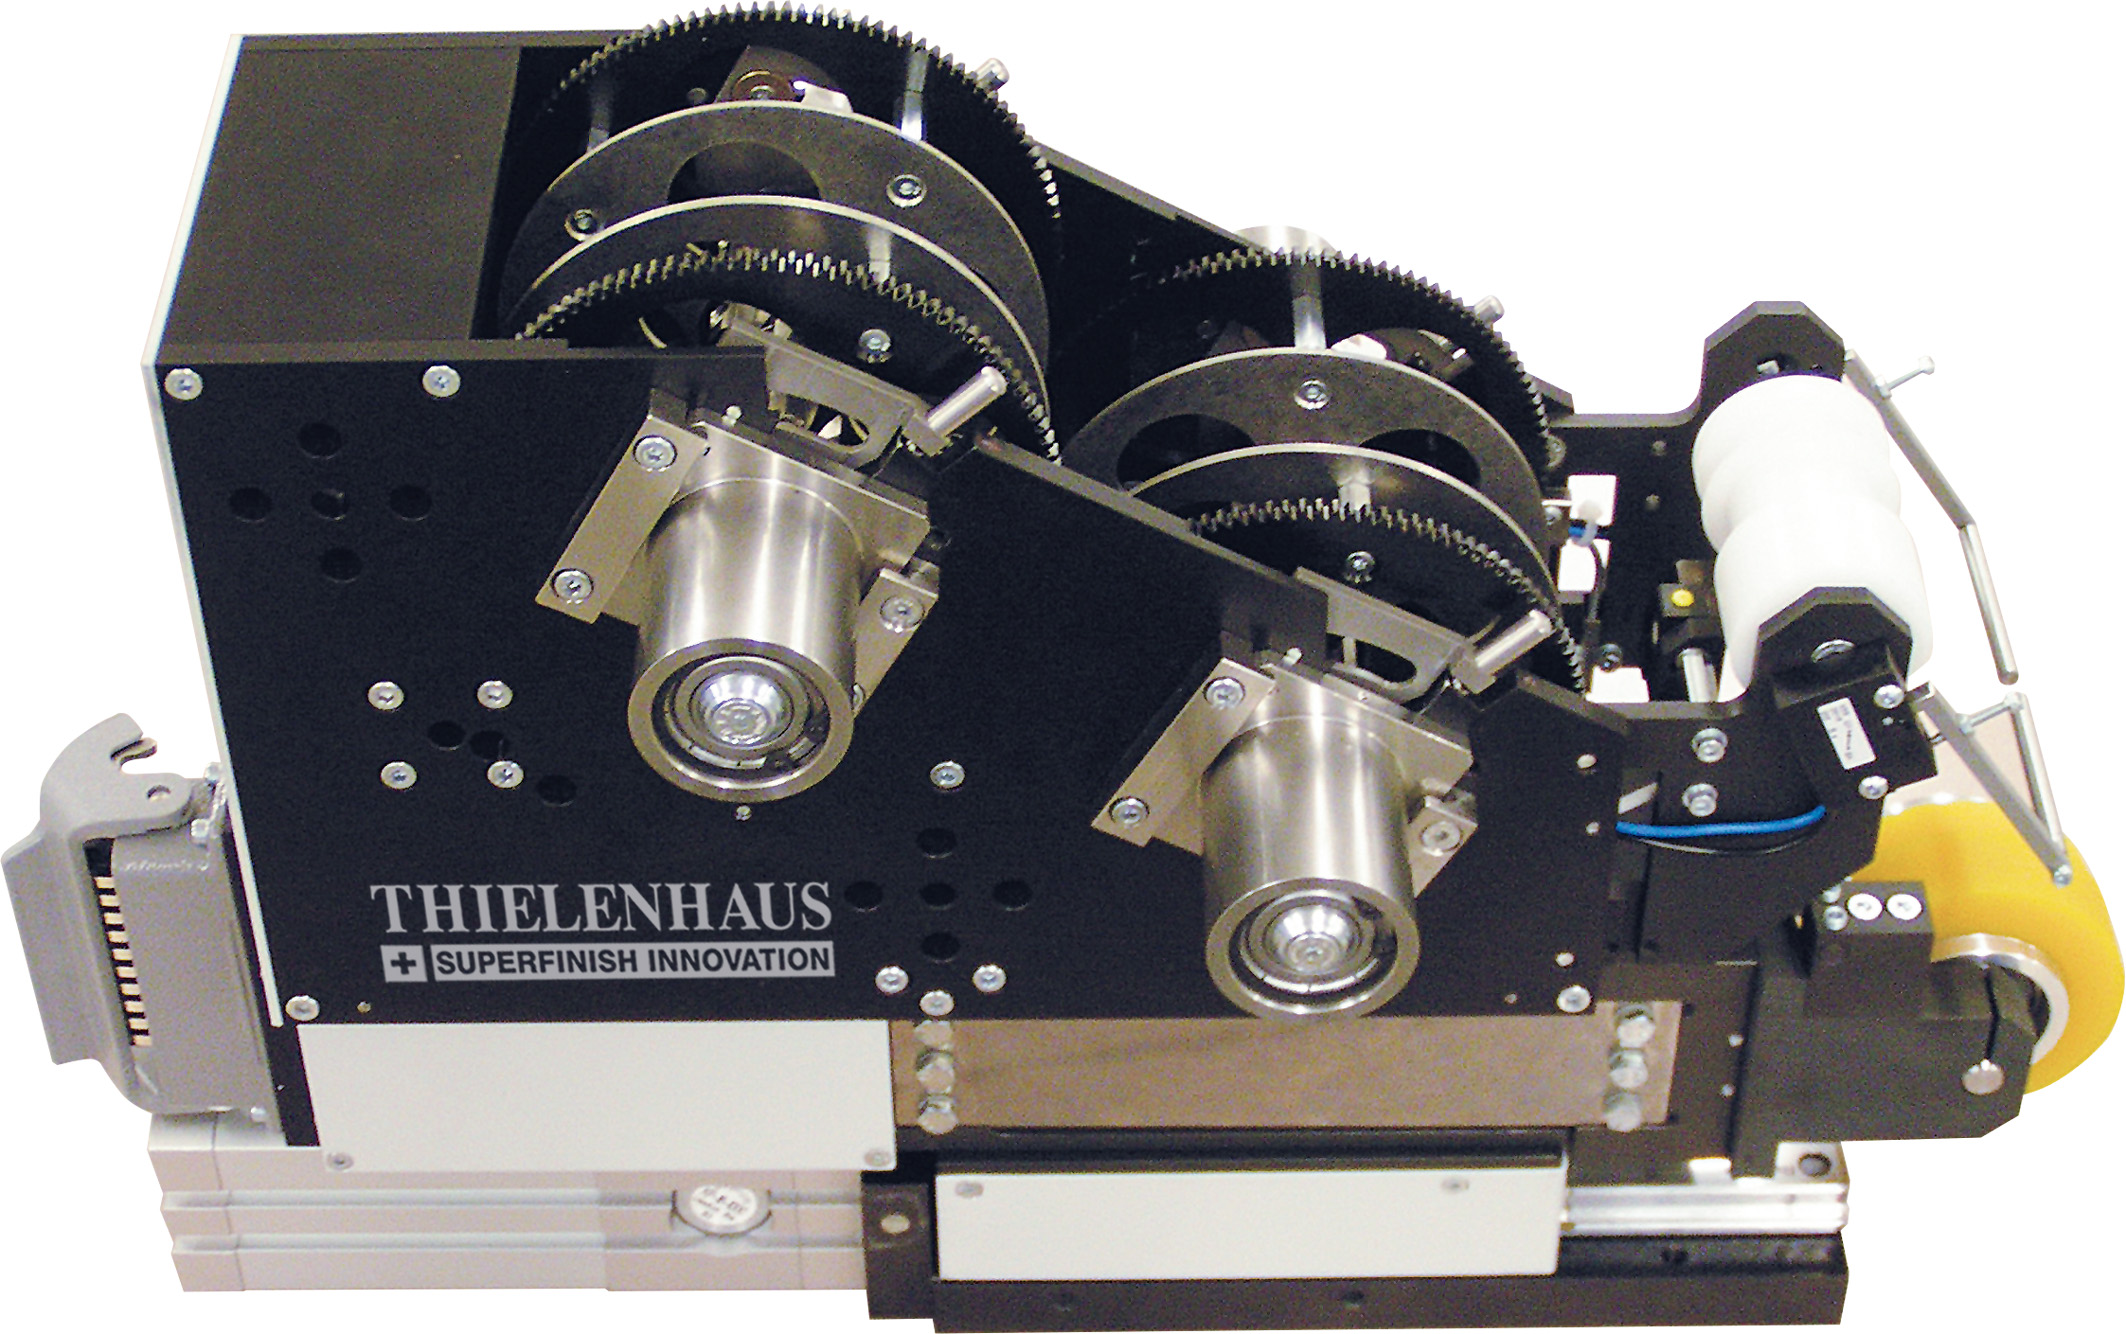 The KG50-DB tape finisher is a double-tape machine and can process two immediately adjacent batches simultaneously | Thielenhaus Superfinish Innovation | Tape finisher KG50-DB